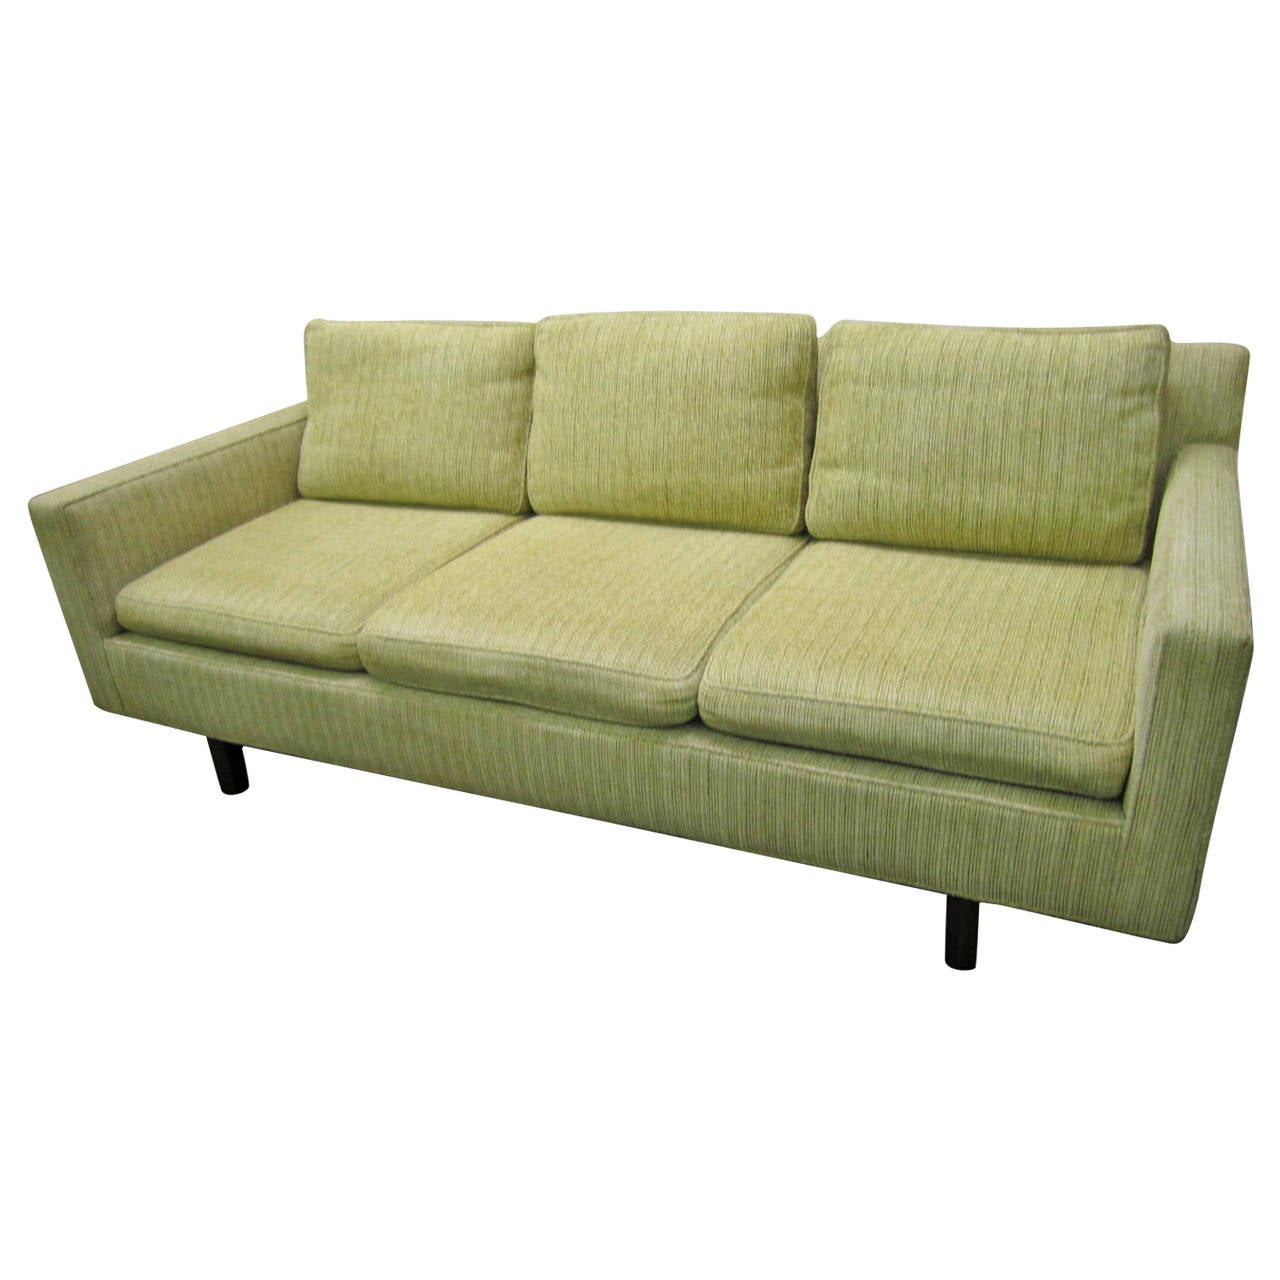 Cost To Reupholster A Sectional Sofa Hereo Sofa